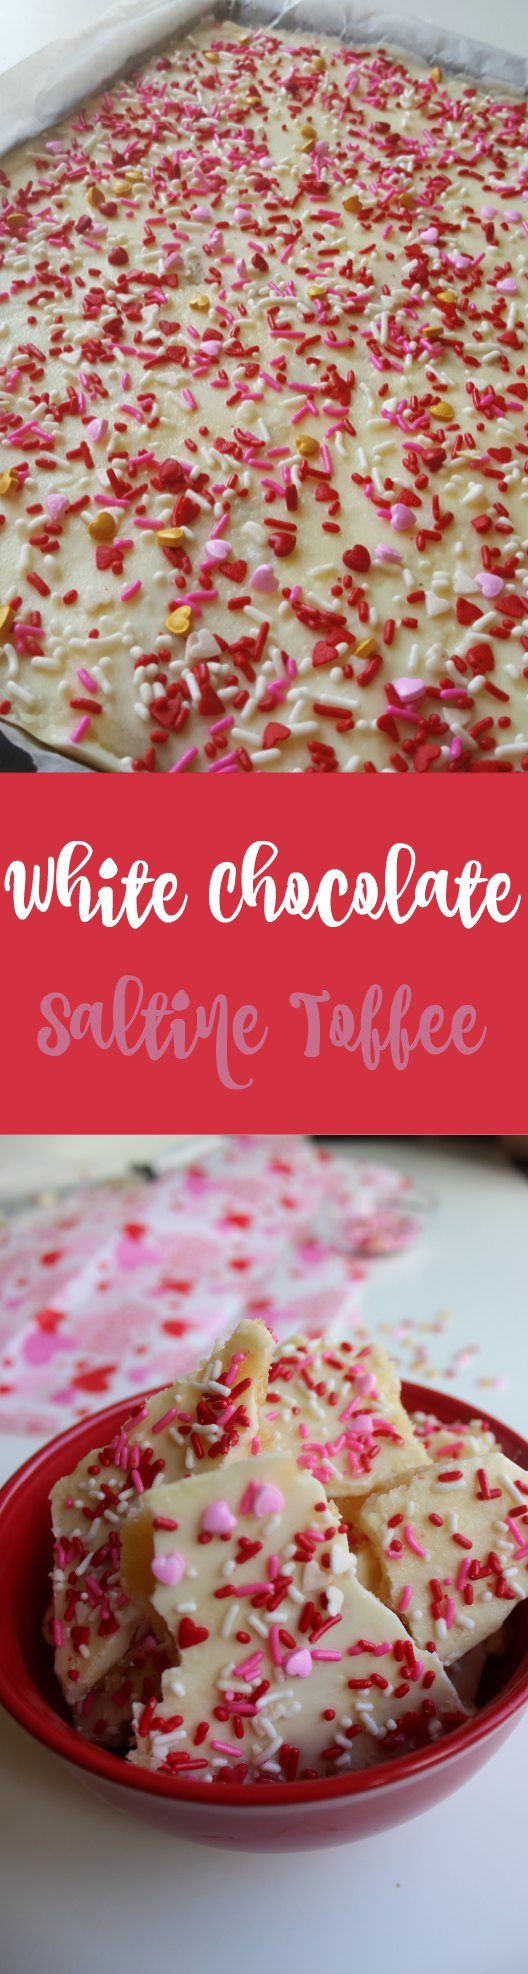 White Chocolate Saltine Toffee - Easy to make salted white chocolate saltine toffee bark a decadent treat or gift for Valentine's.